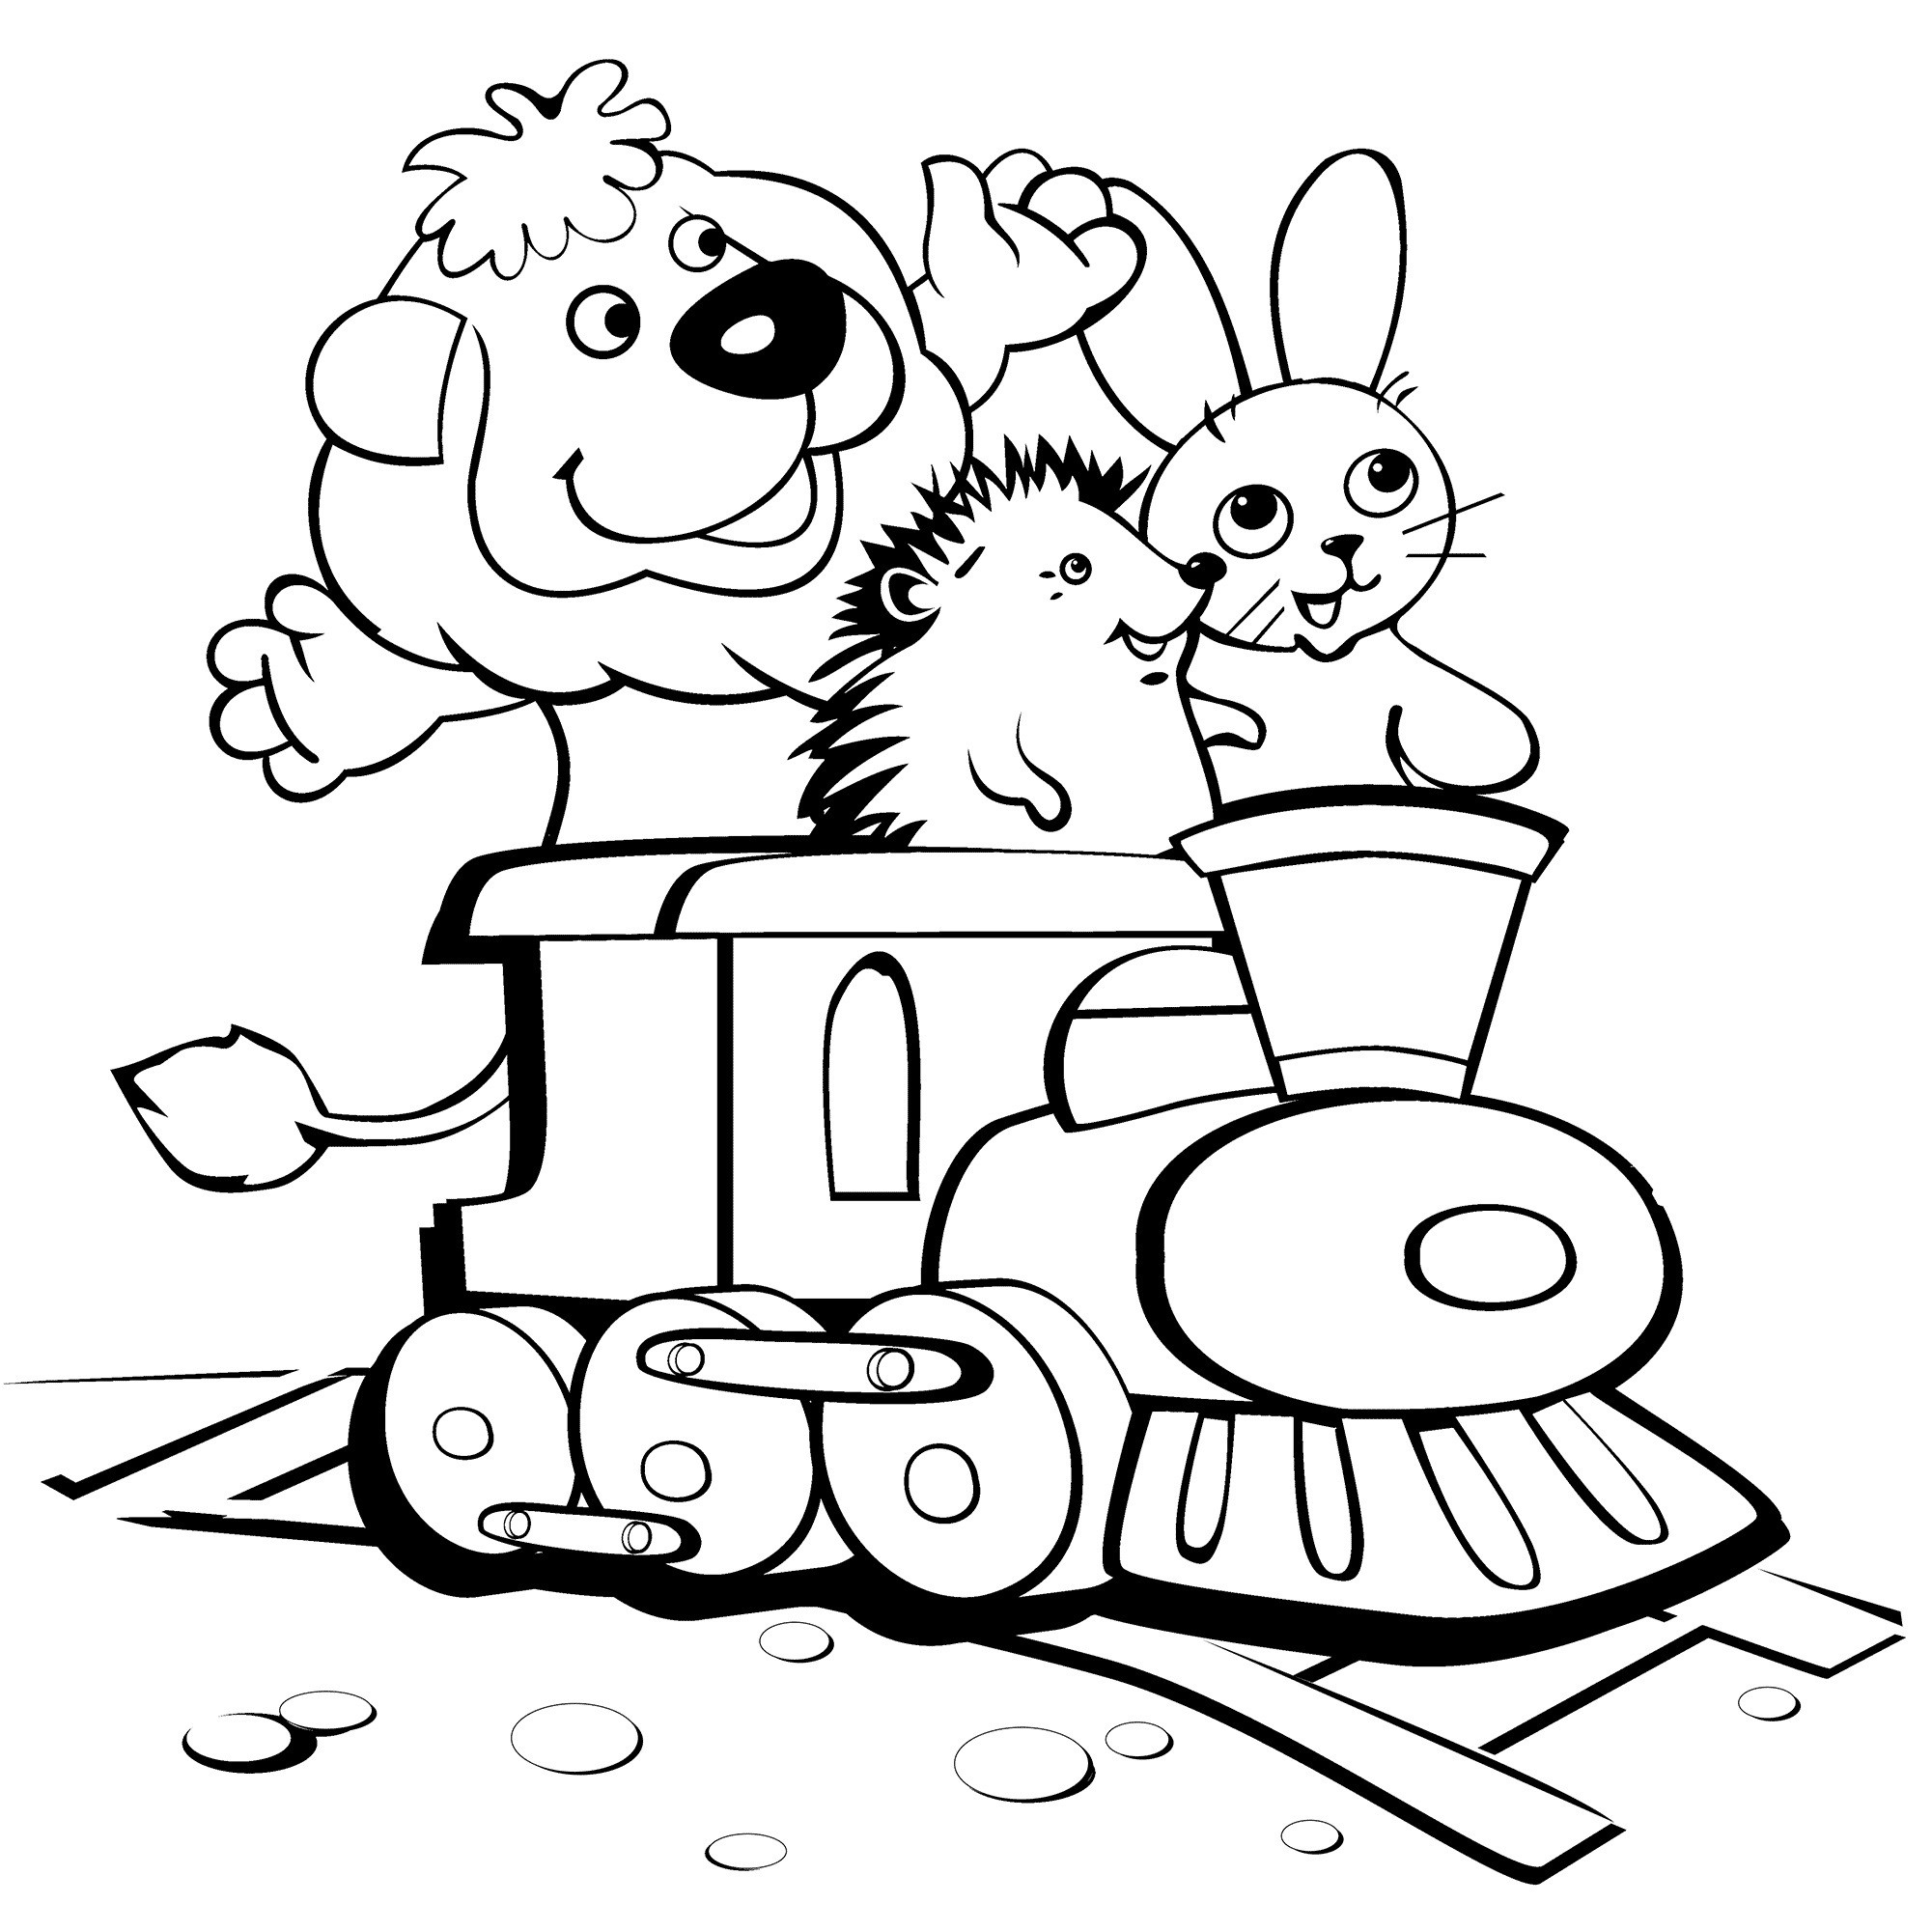 Kids Free Coloring Pages  Free Printable Funny Coloring Pages For Kids